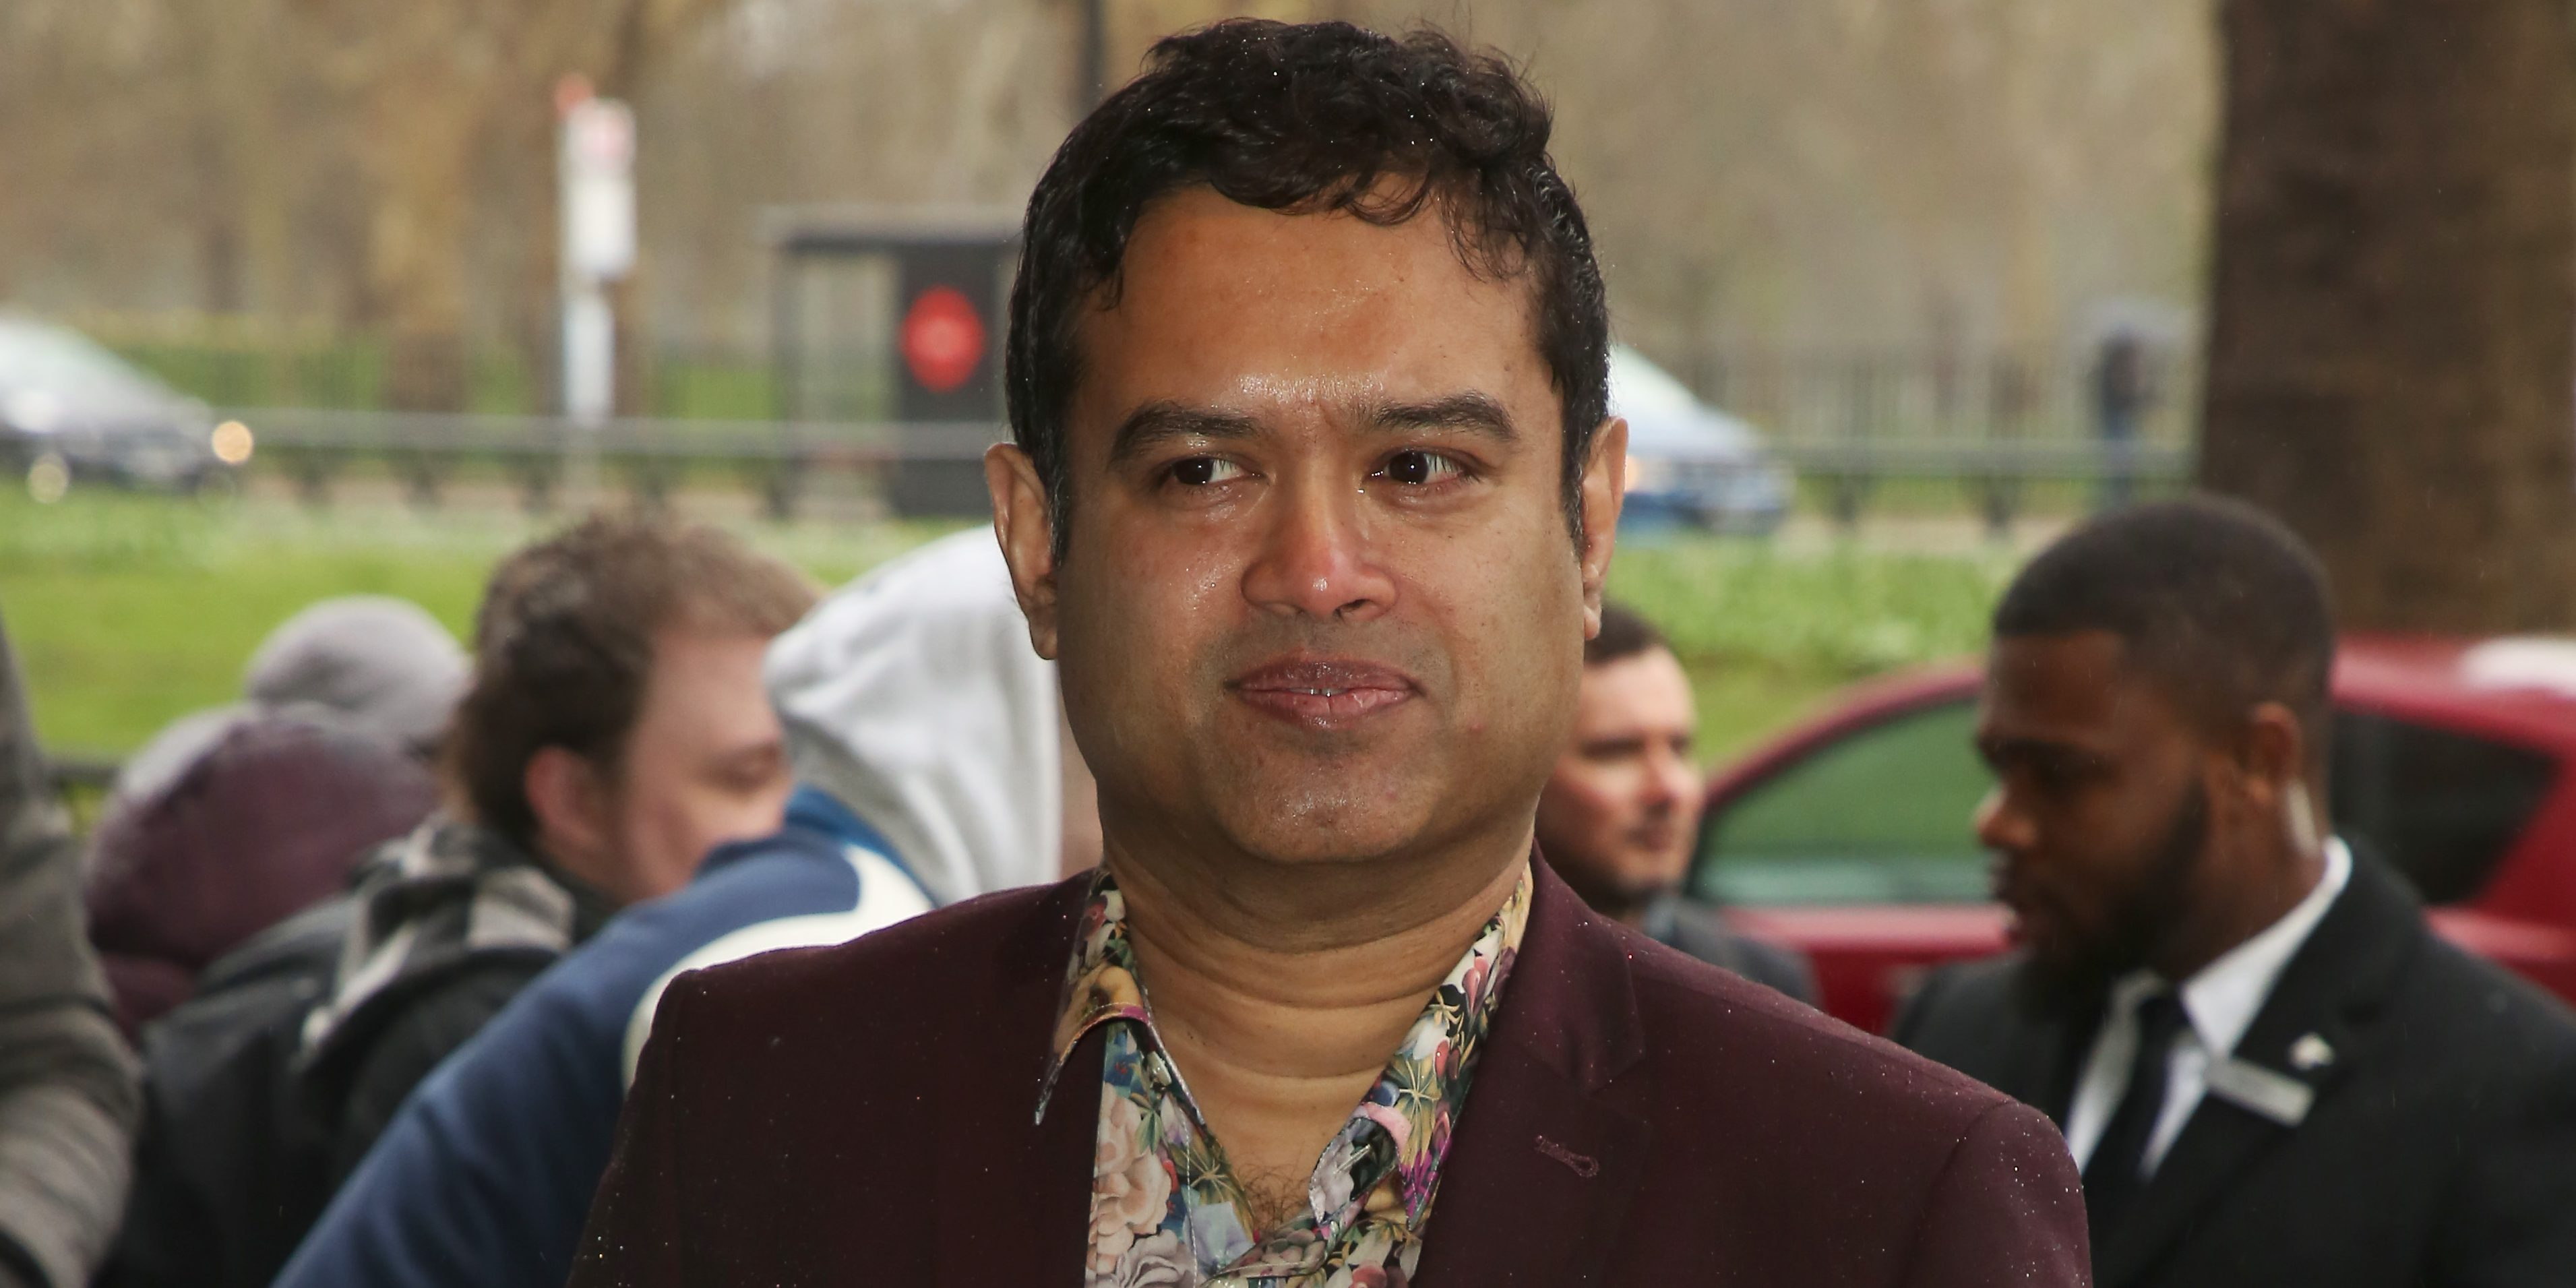 The Chase's Paul Sinha crowned British Quiz Champion